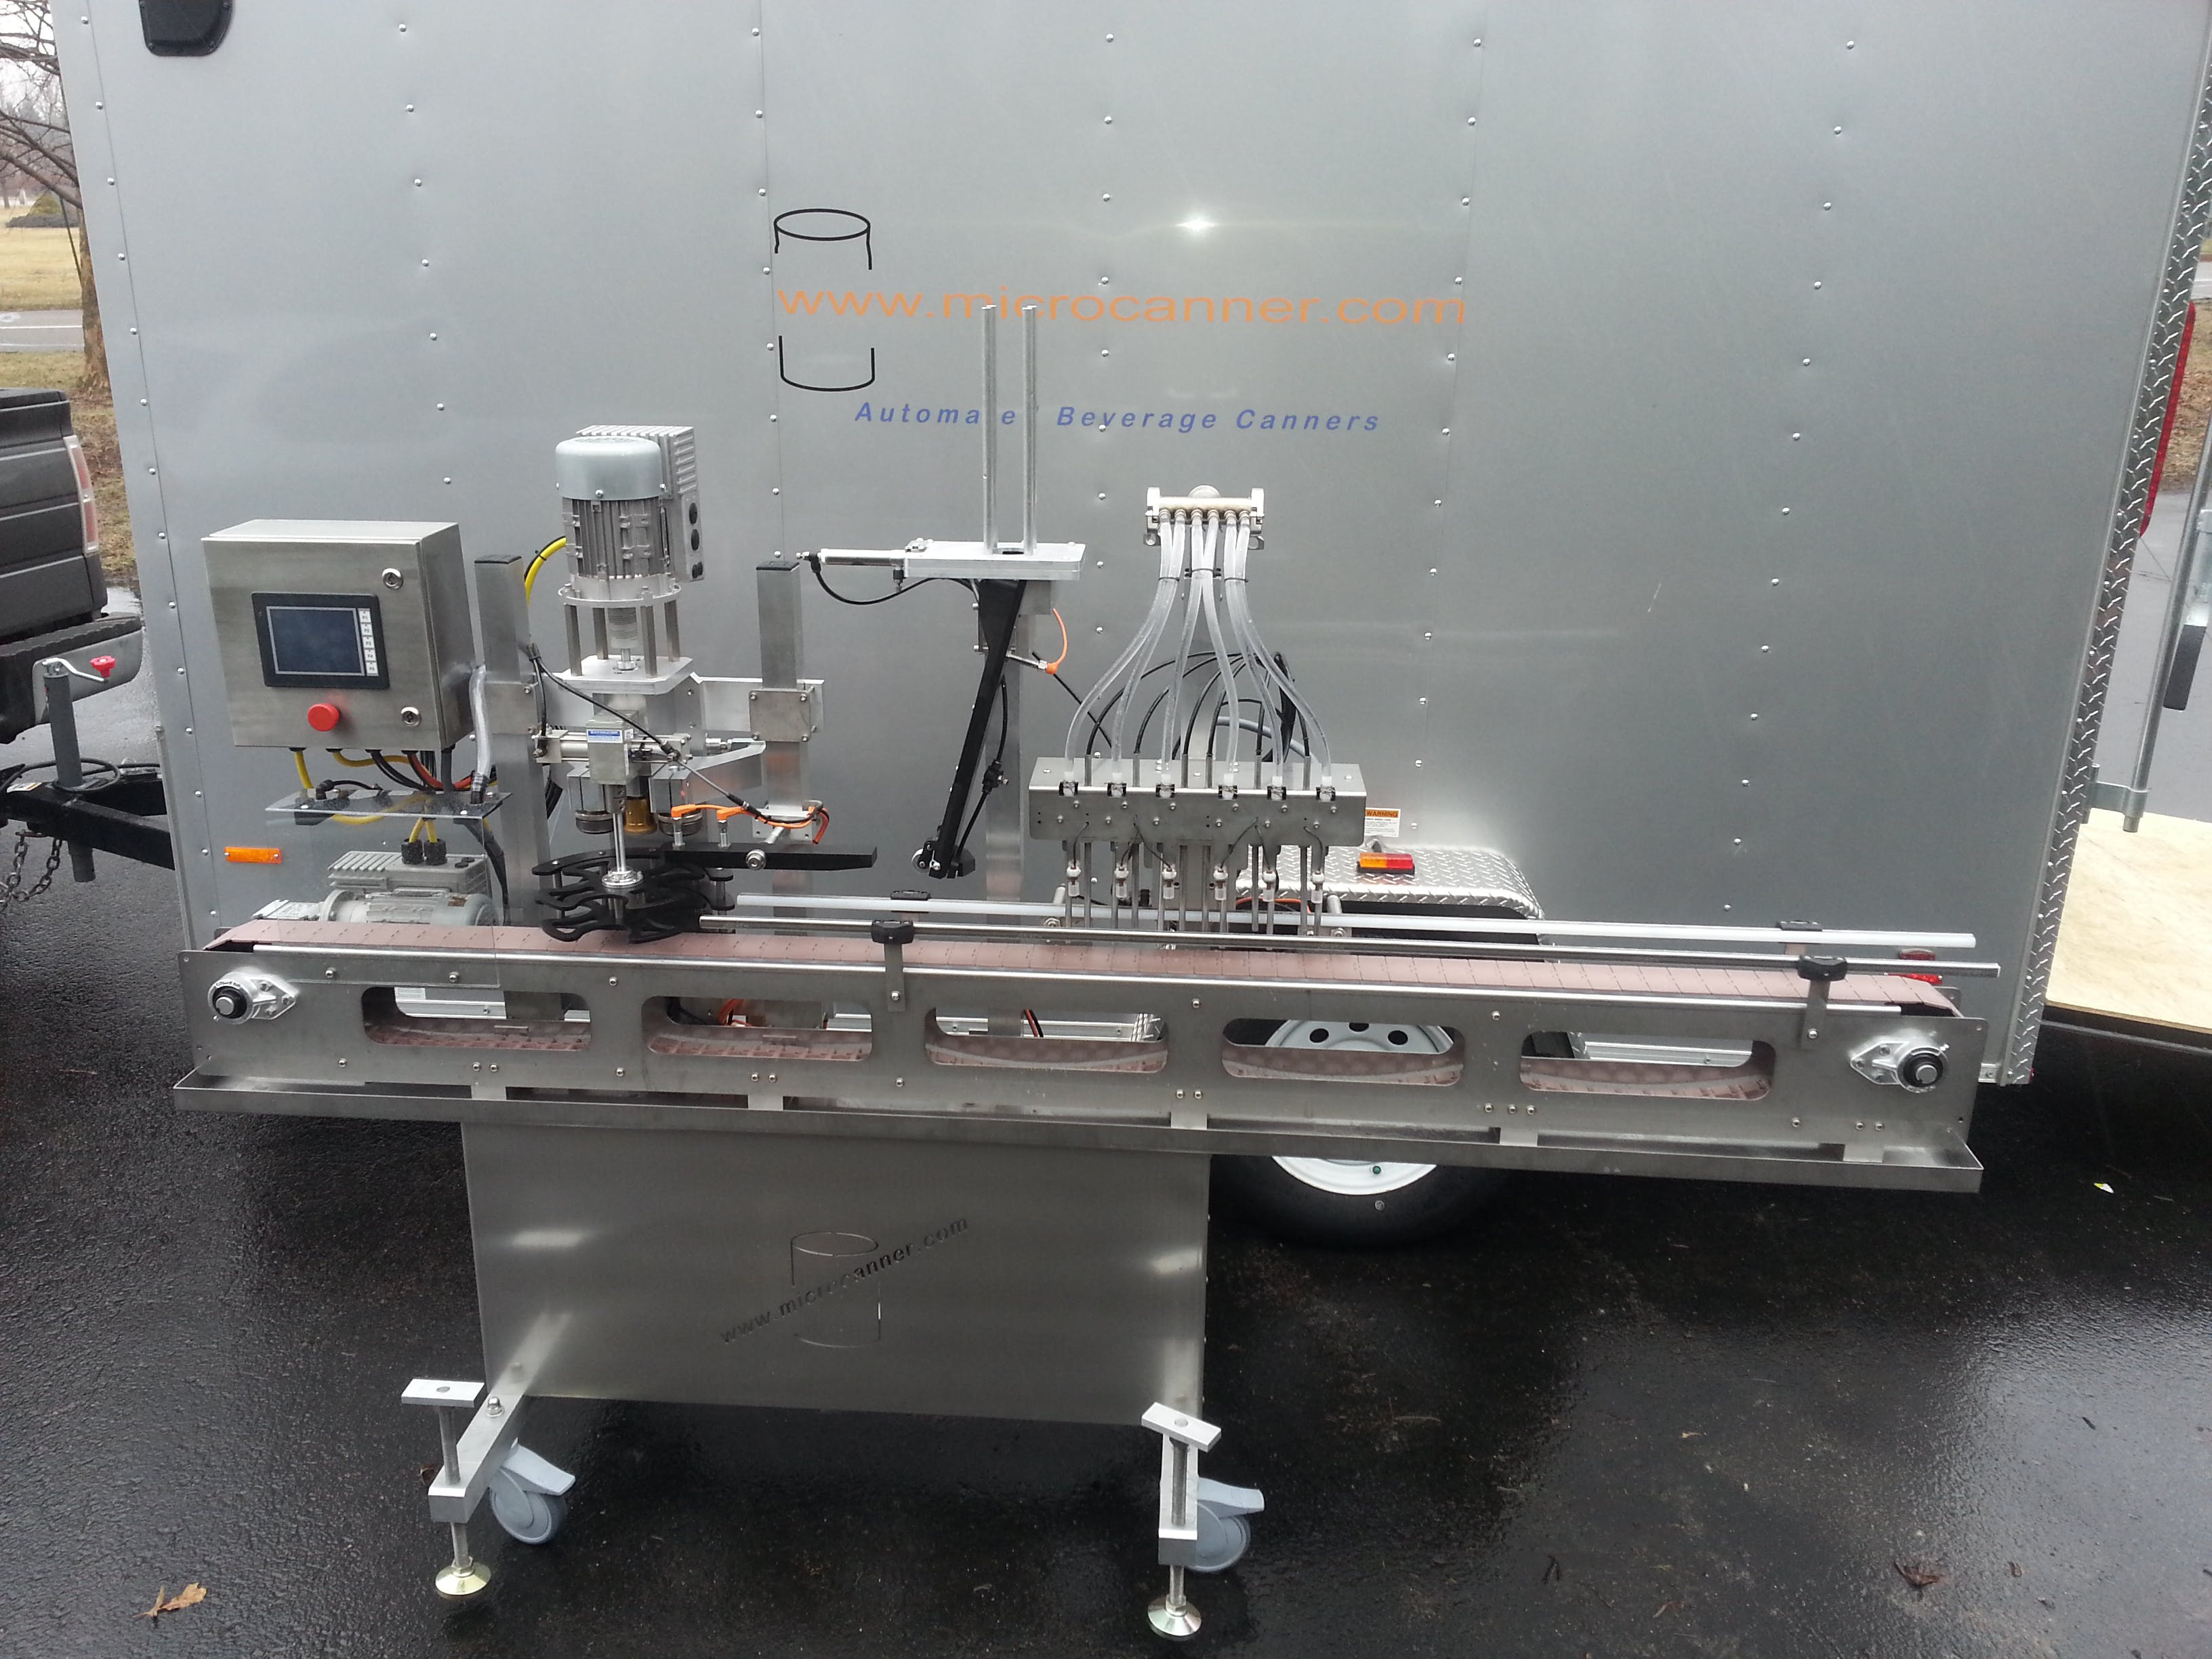 MC-201 Base Can Unit Can filler sold by Microcanner